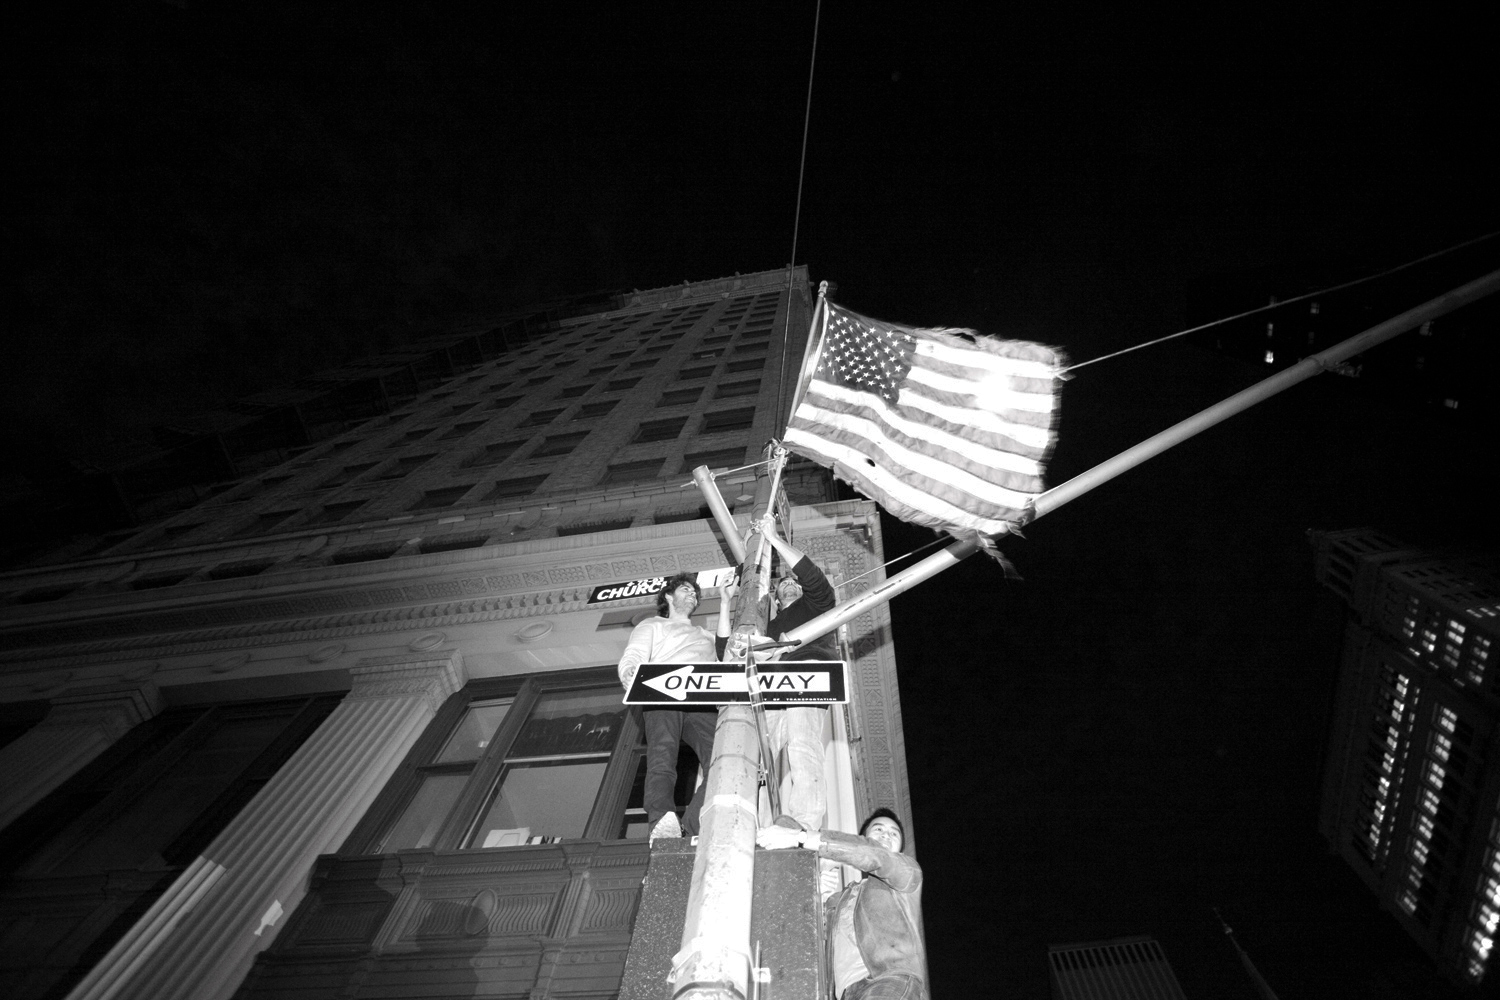 An excited young man raised the spirits of the crowd while waving a tattered flag over the streets.